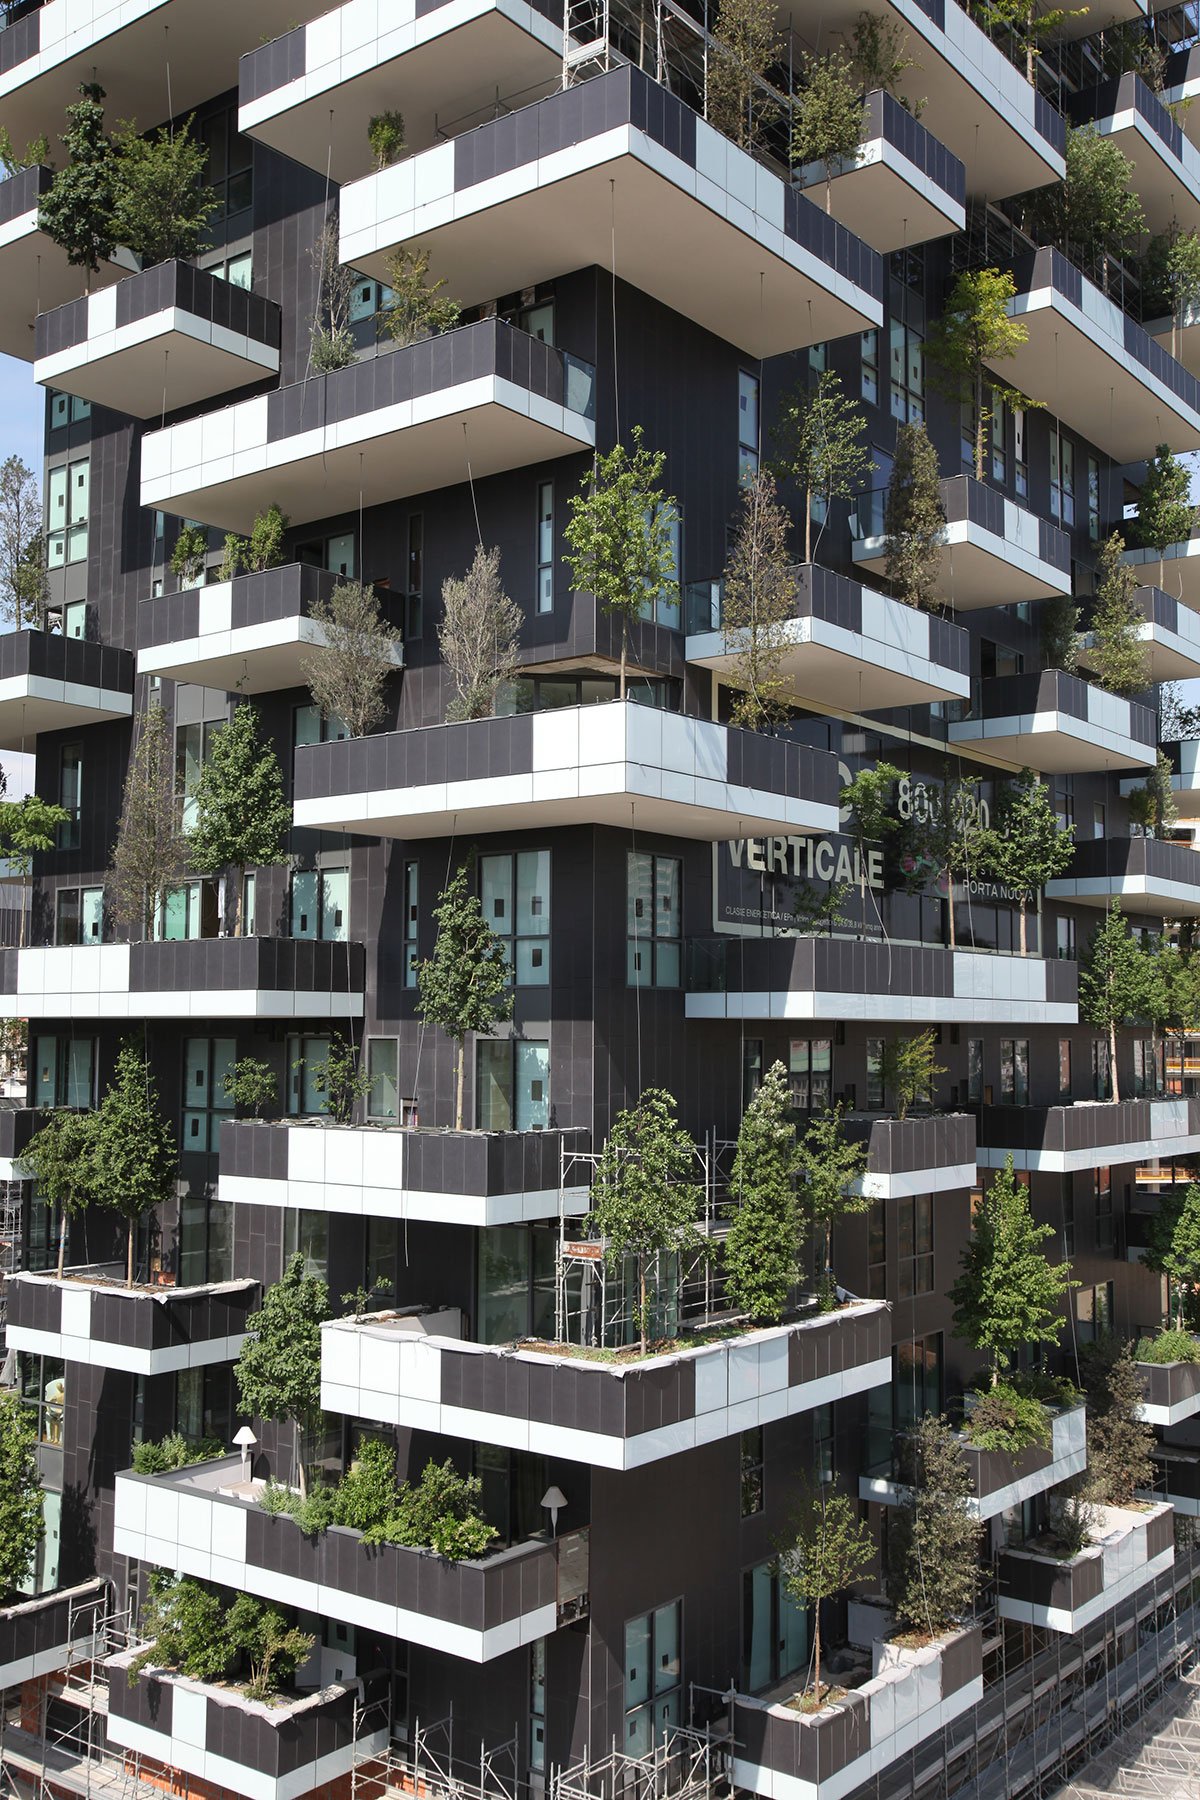 porta nuova isola bosco verticale milan properties hines. Black Bedroom Furniture Sets. Home Design Ideas